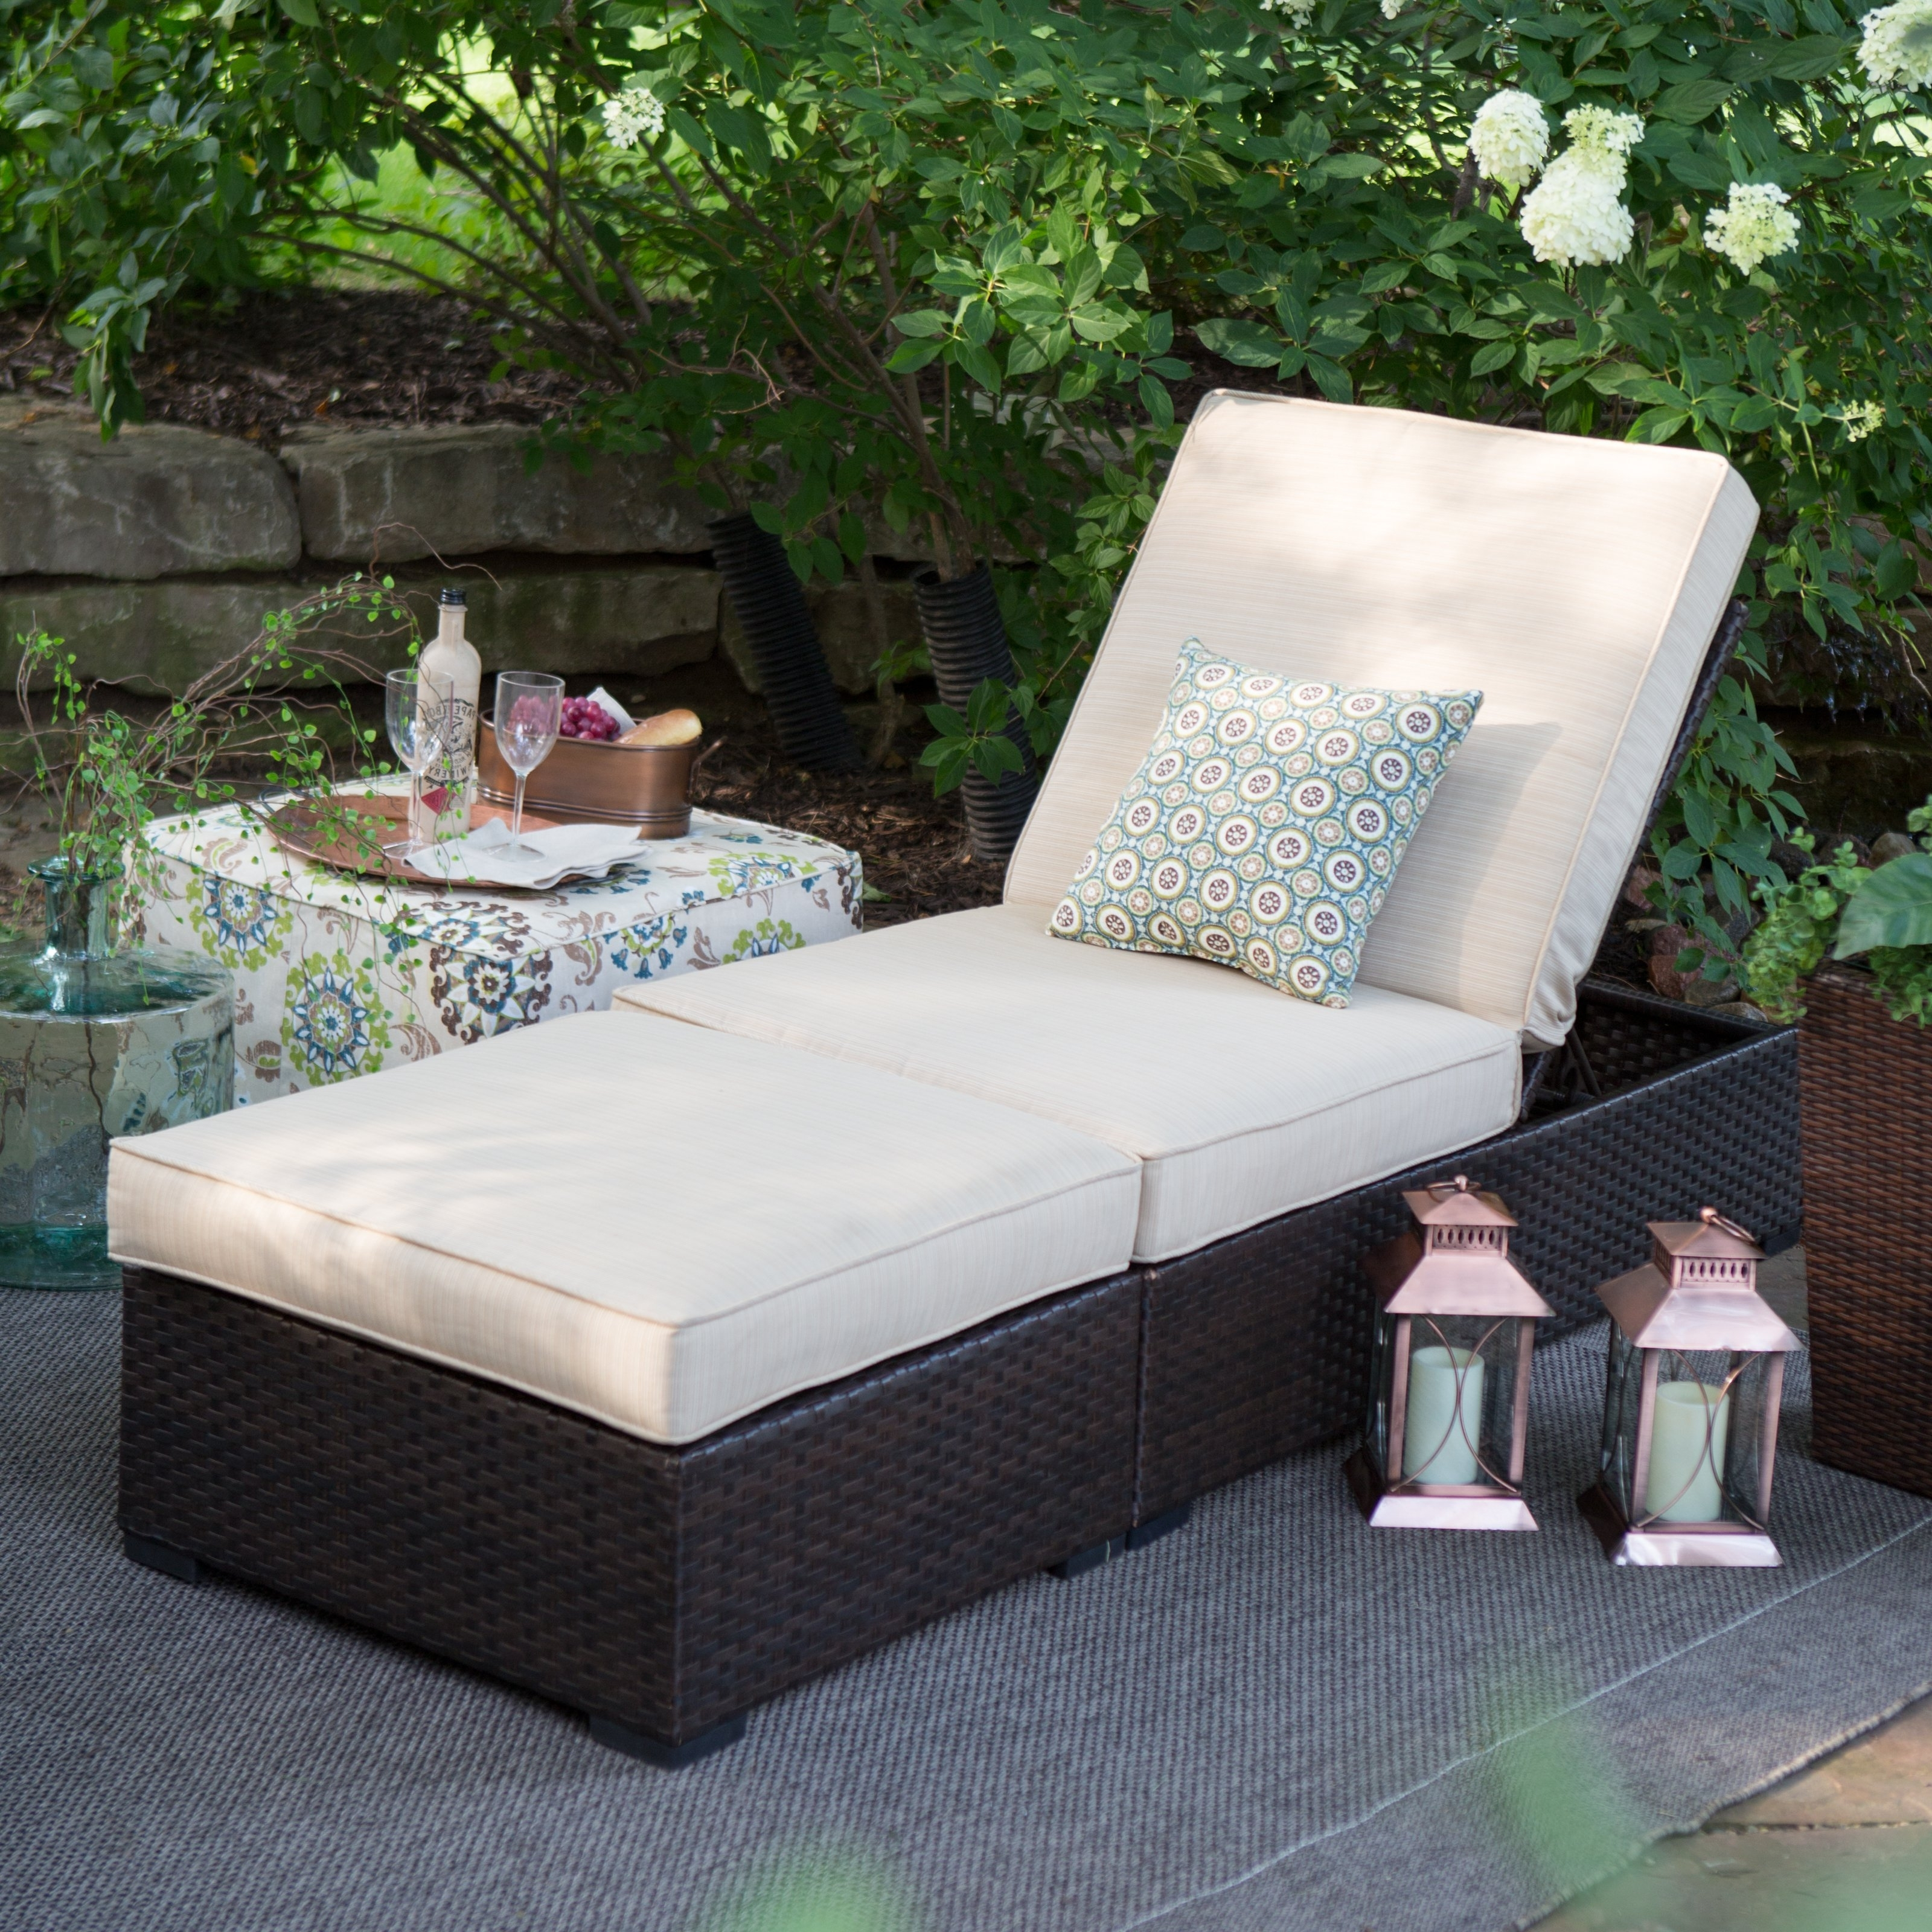 Double Outdoor Chaise Lounges For Fashionable Belham Living Marcella Wide Wicker Chaise Lounge With Ottoman (View 15 of 15)